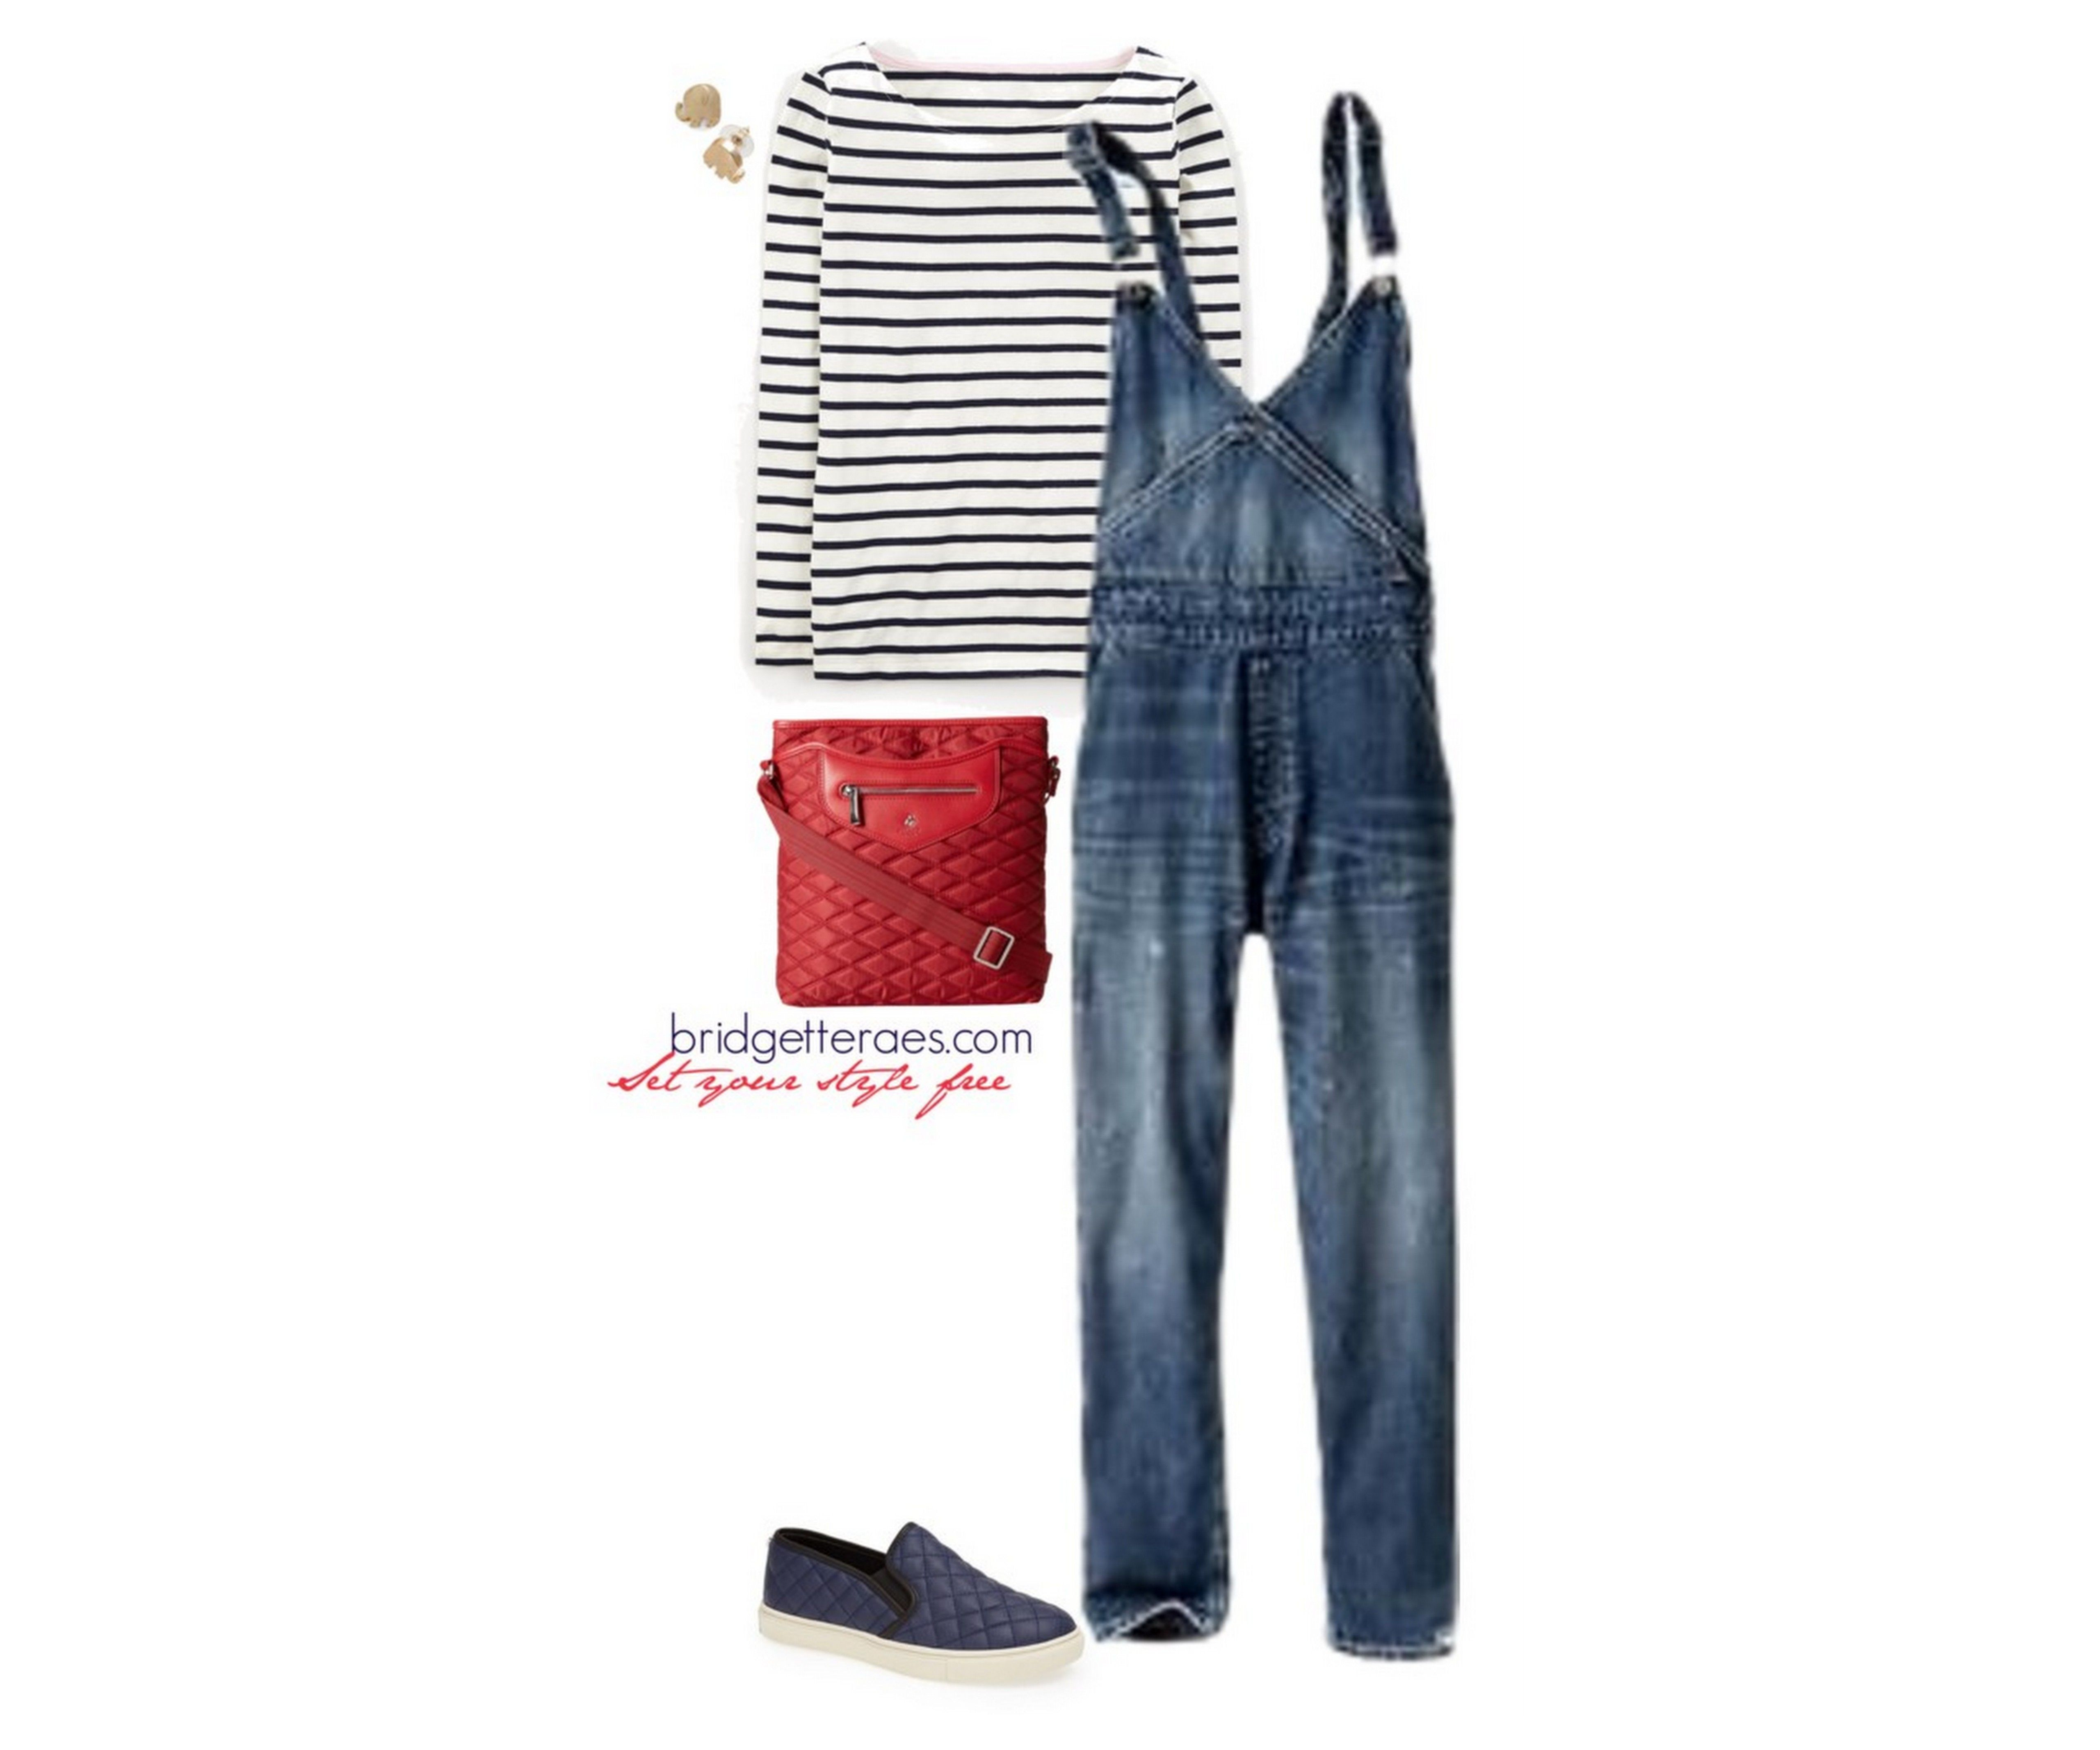 Stylish in Overalls Without Looking Five, Like a Farmer or a Fool - Bridgette Raes Style Expert